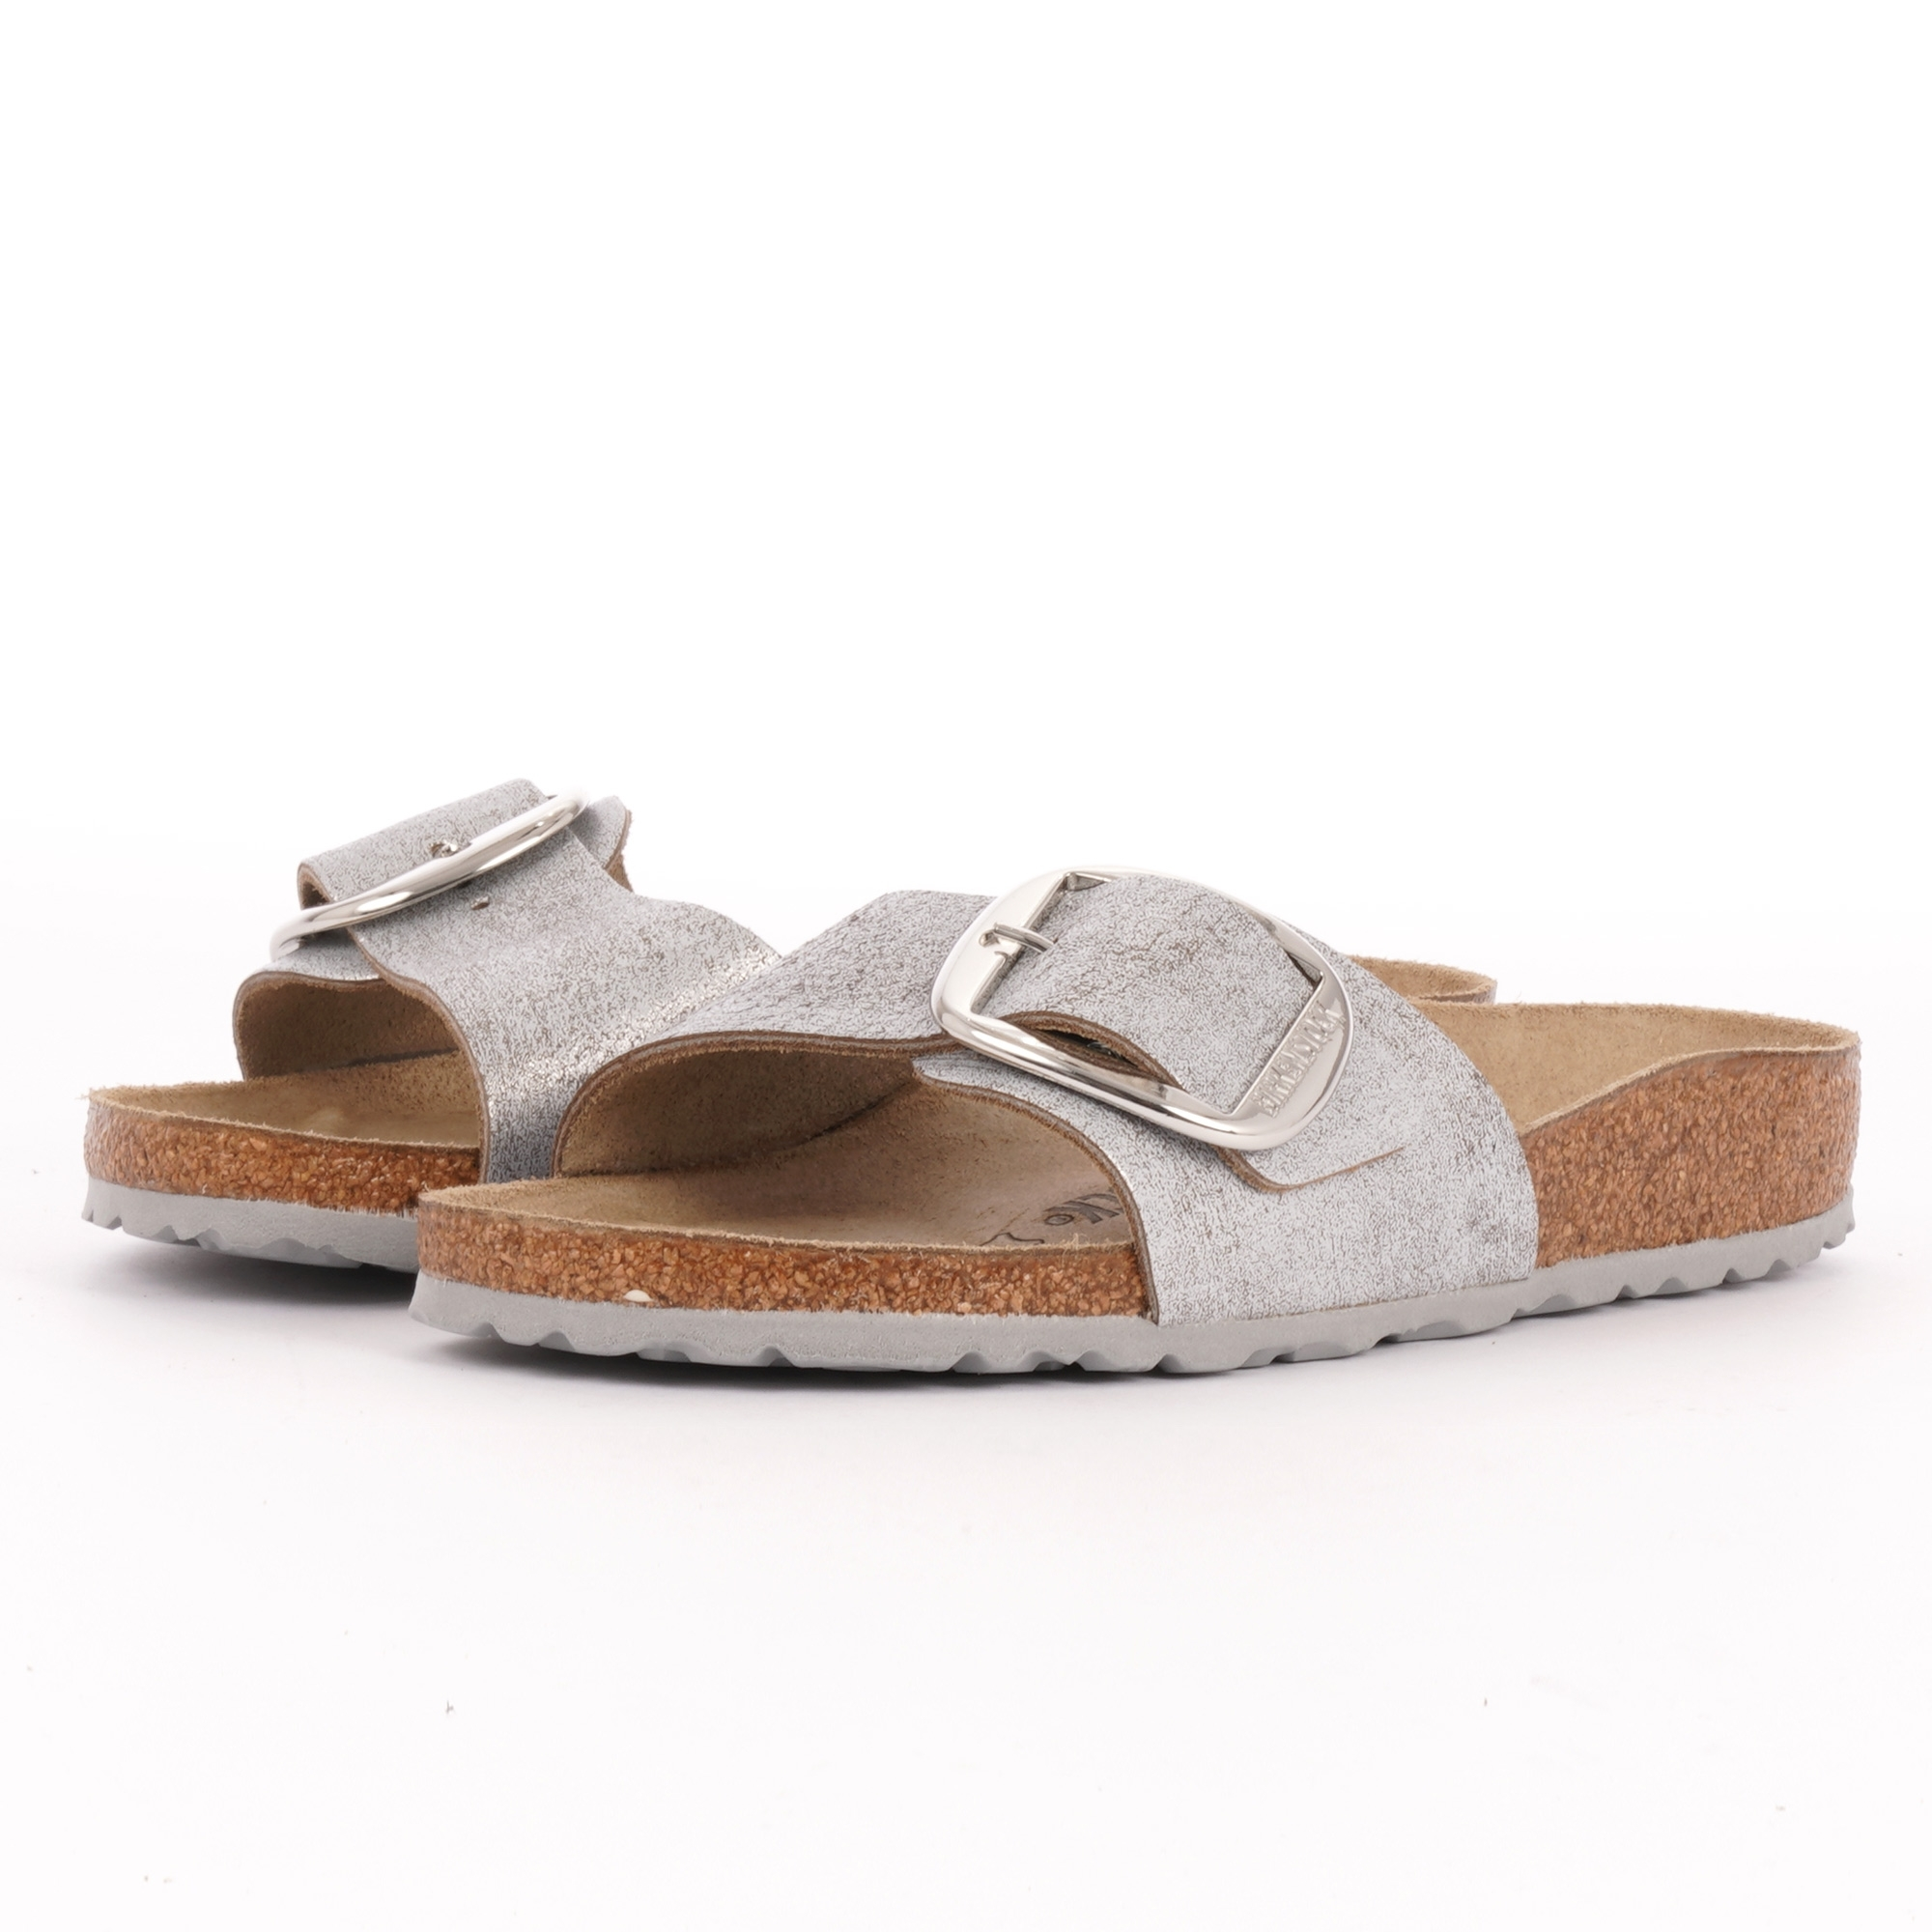 216b03db8e5 Birkenstock Madrid Big Buckle Sandals | Washed Metallic Blue | 1012886